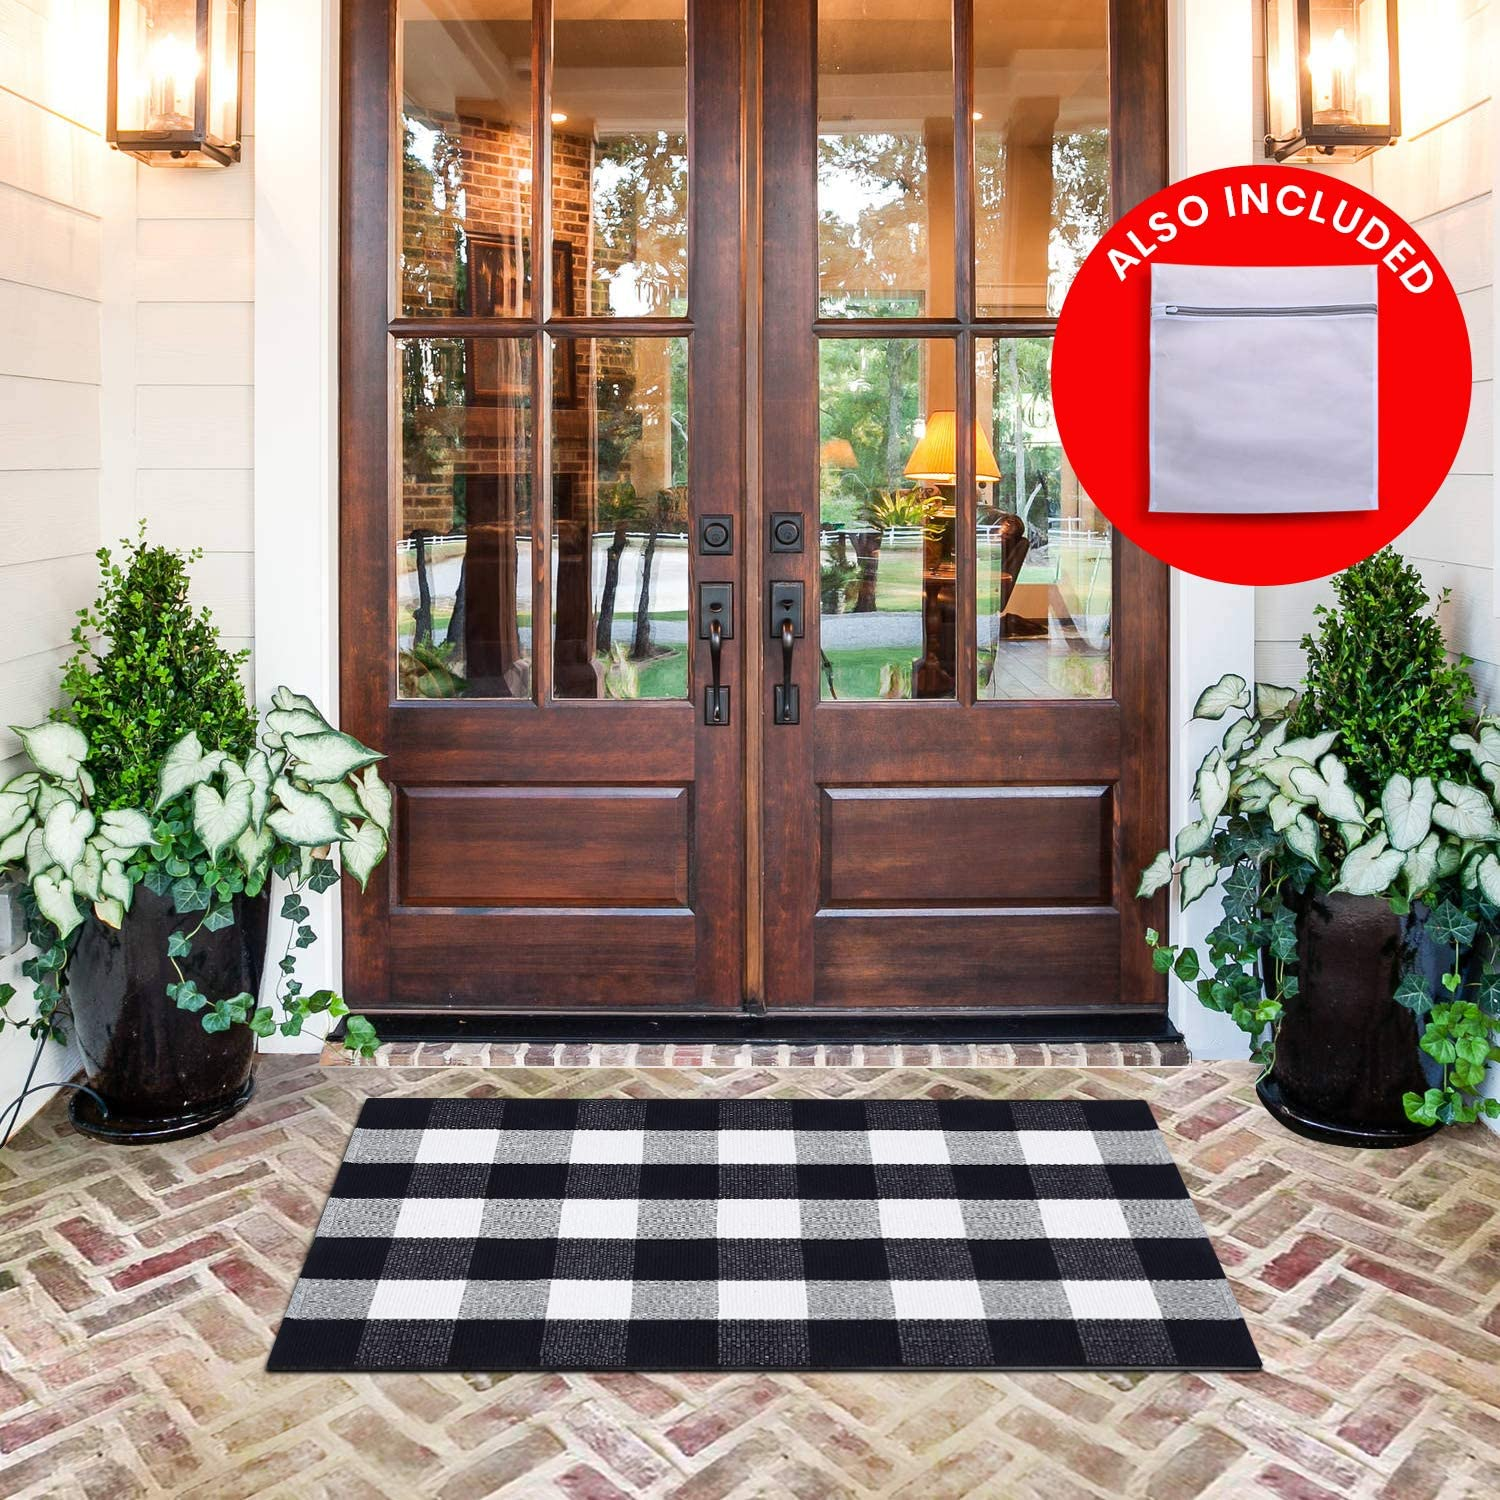 "All Prime Buffalo Plaid Rug - Extra Large 28"" x 44"" Pure Black and White Rug for Indoor & Outdoor - Buffalo Check Rug for Kitchen, Bathroom, Porch Decor- Buffalo Plaid Front Door Mat with Laundry Bag"